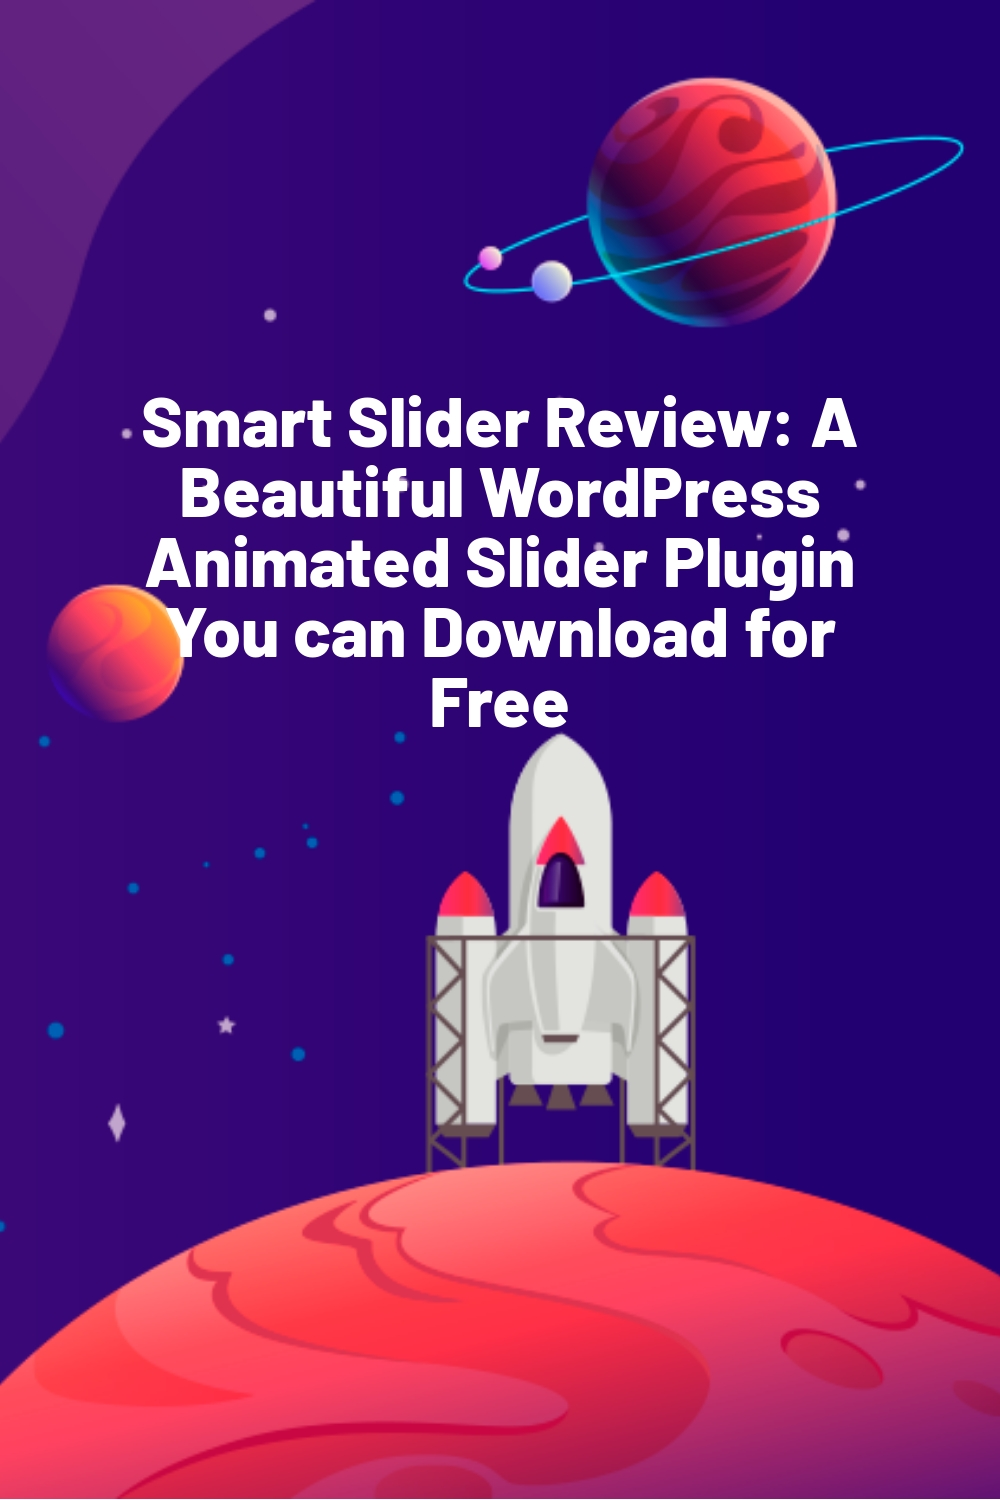 Smart Slider Review: A Beautiful WordPress Animated Slider Plugin You can Download for Free